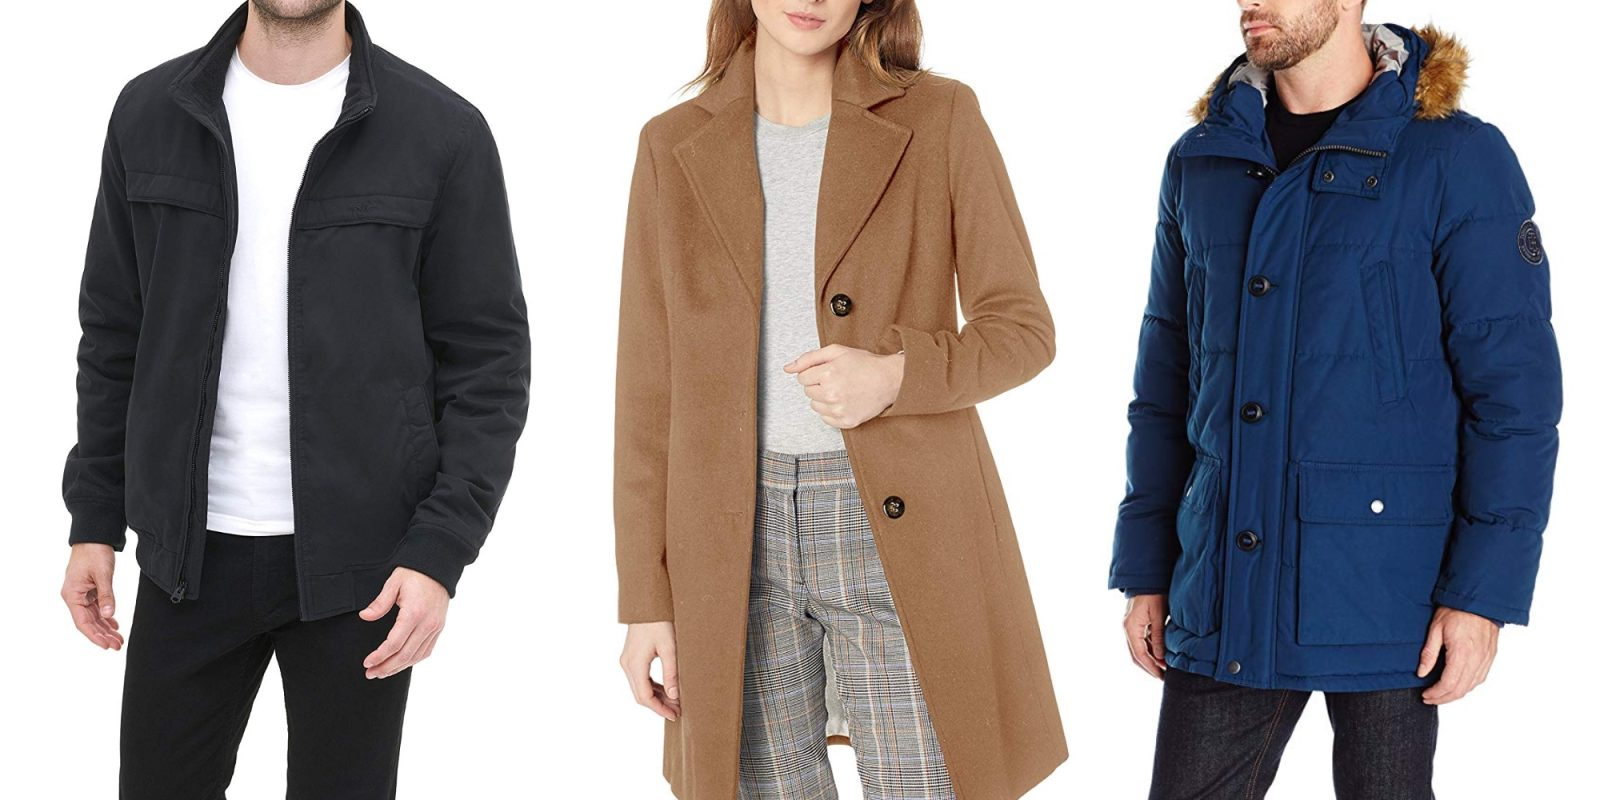 Amazon preps you for winter weather with up to 30% off coats from $24